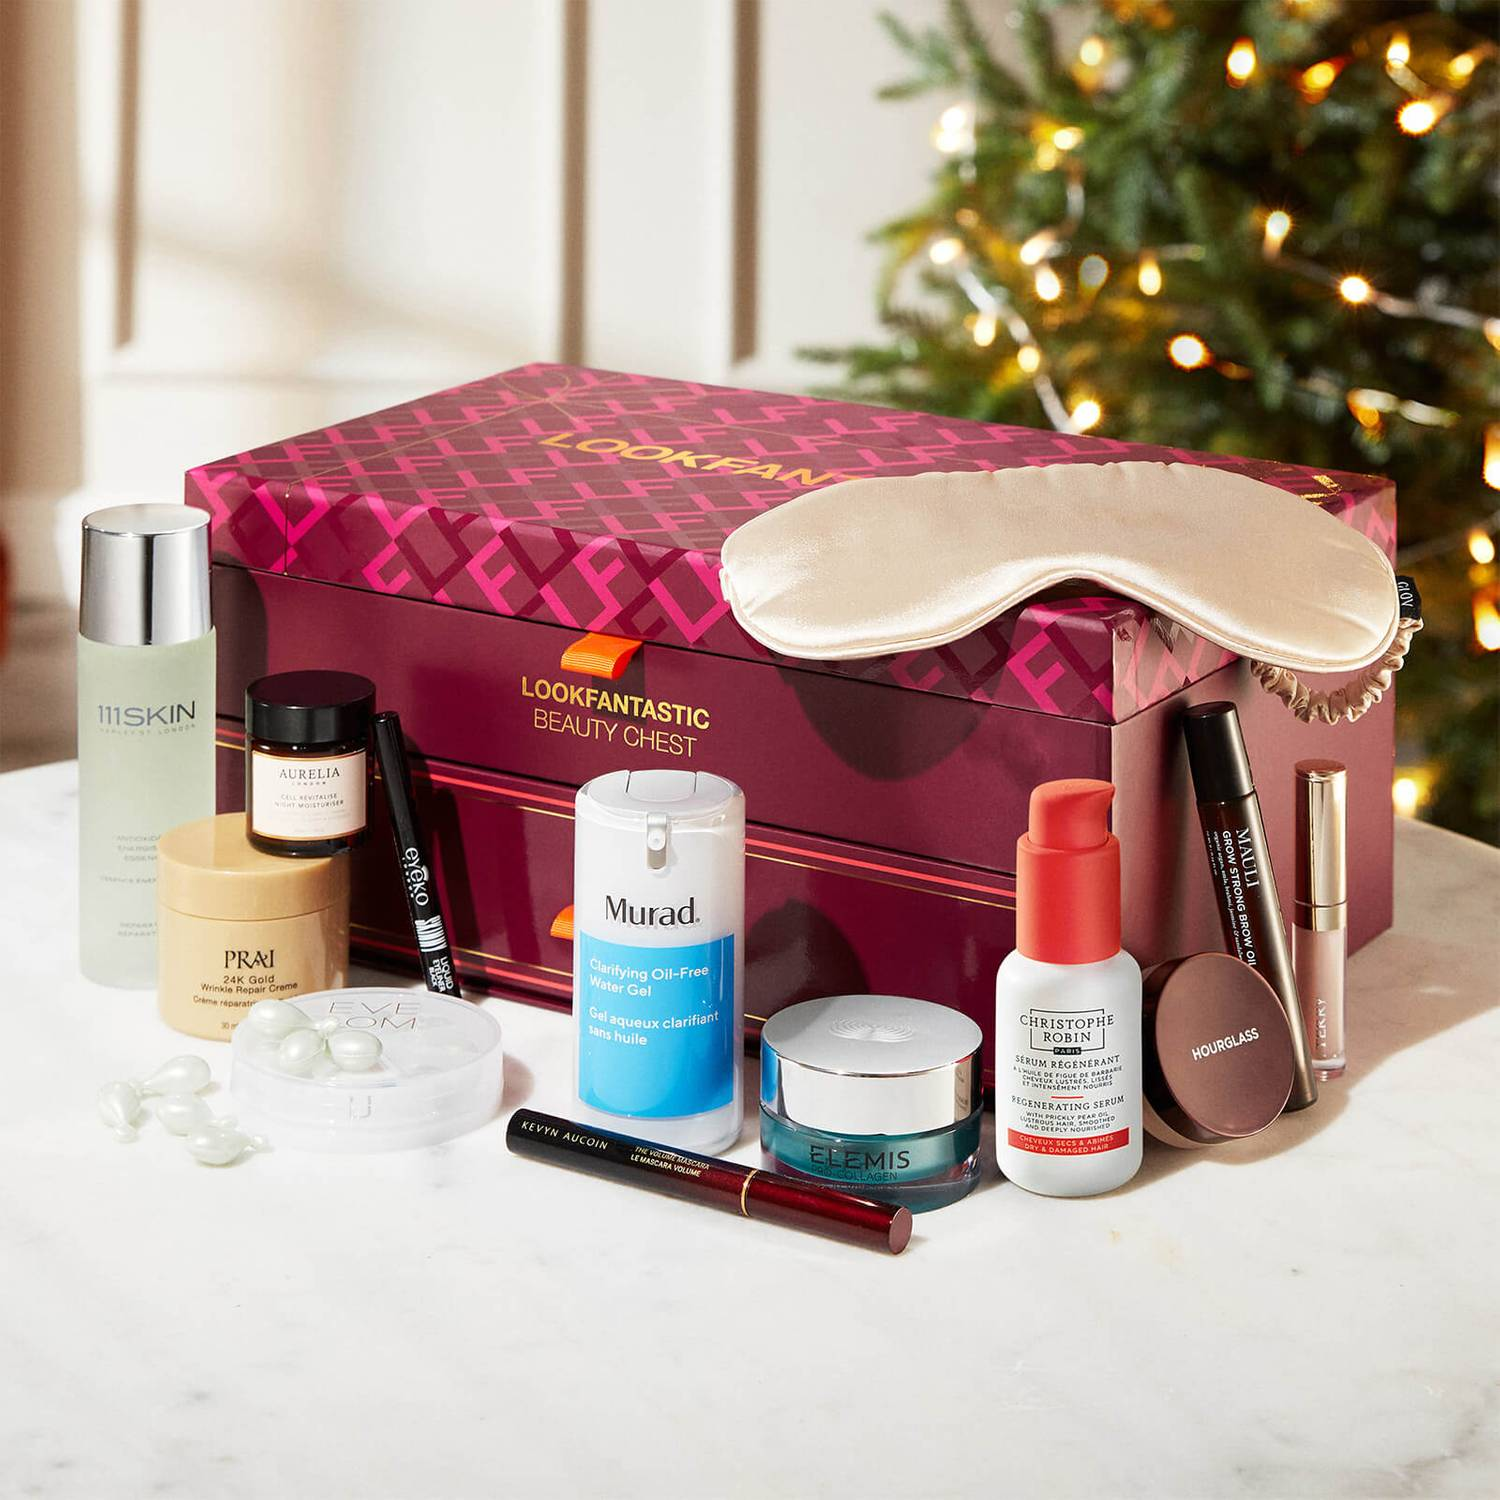 2021 Lookfantastic Beauty Chest – On Sale Now!